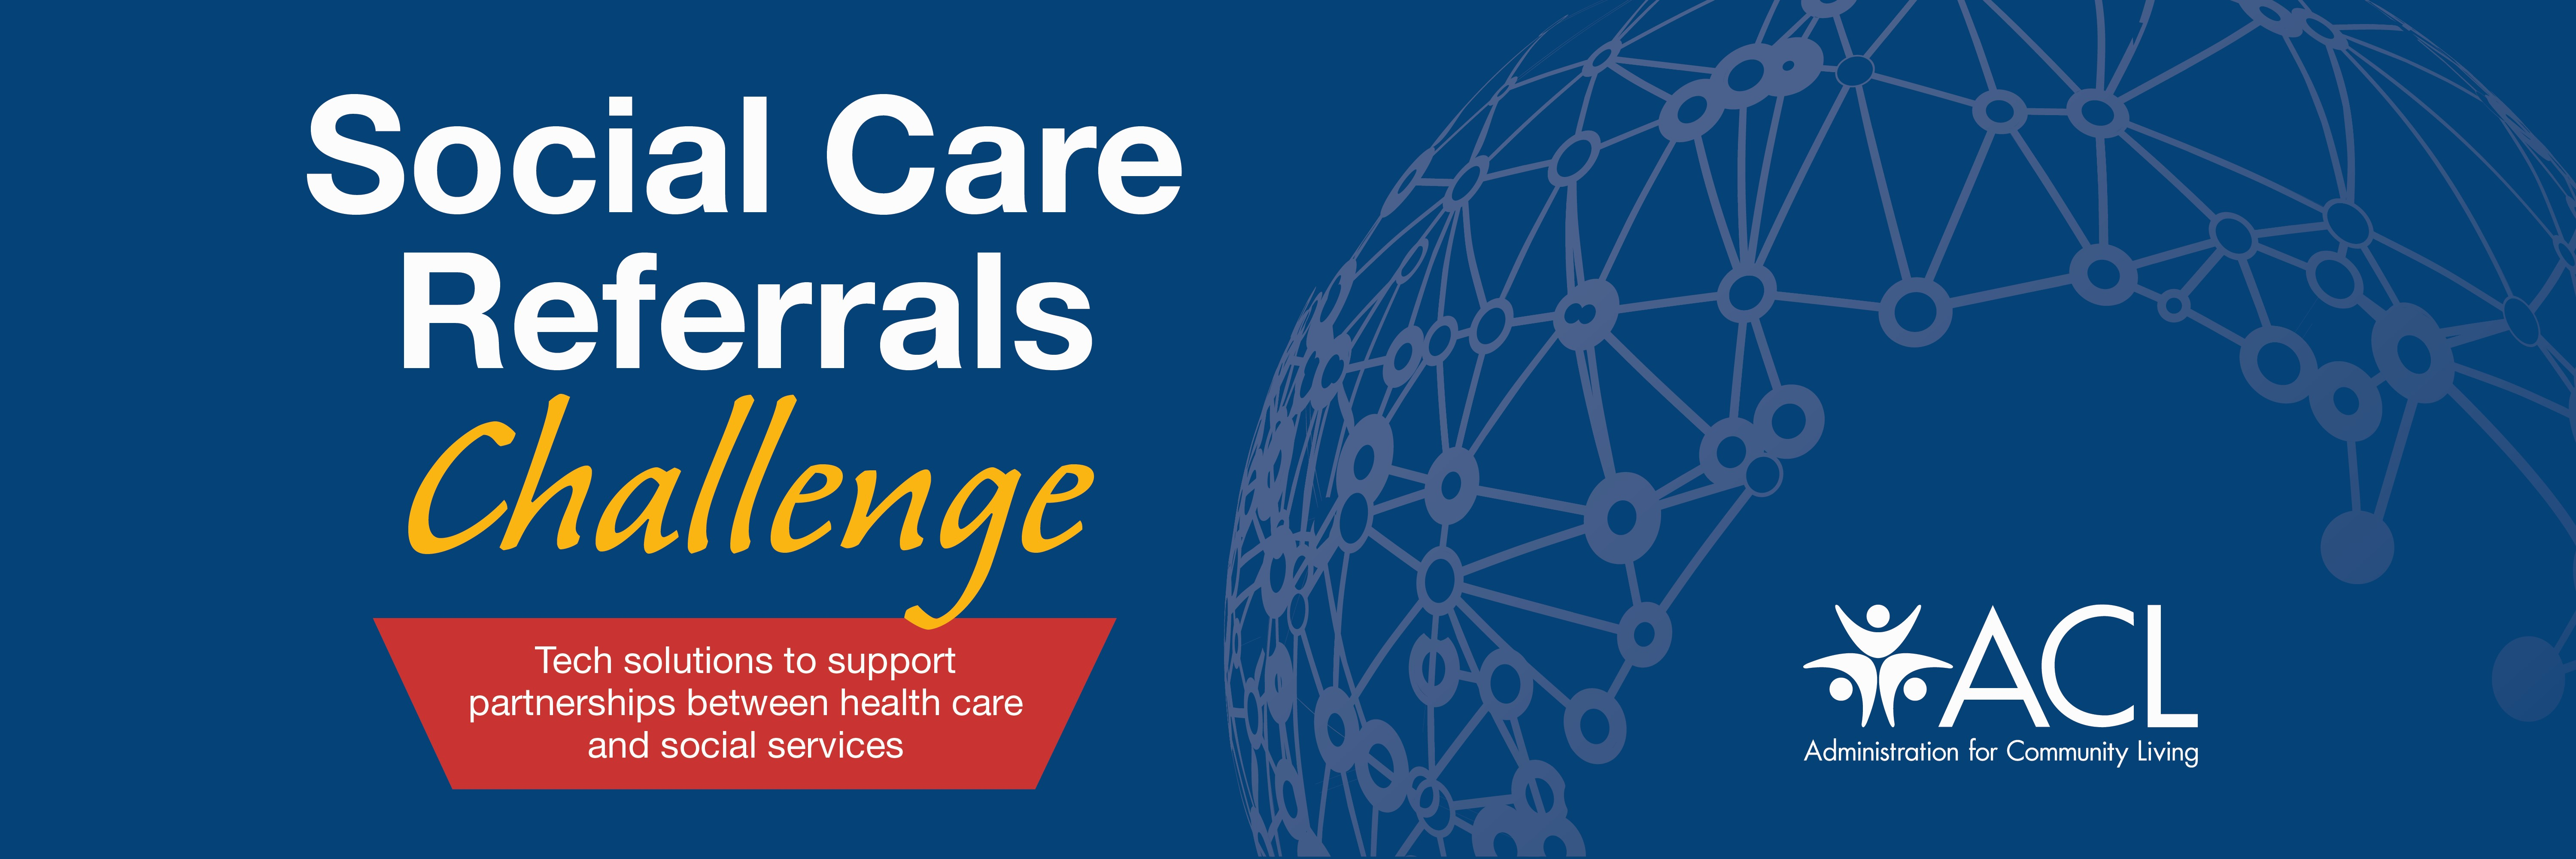 Social Care Referrals Challenge Web Banner